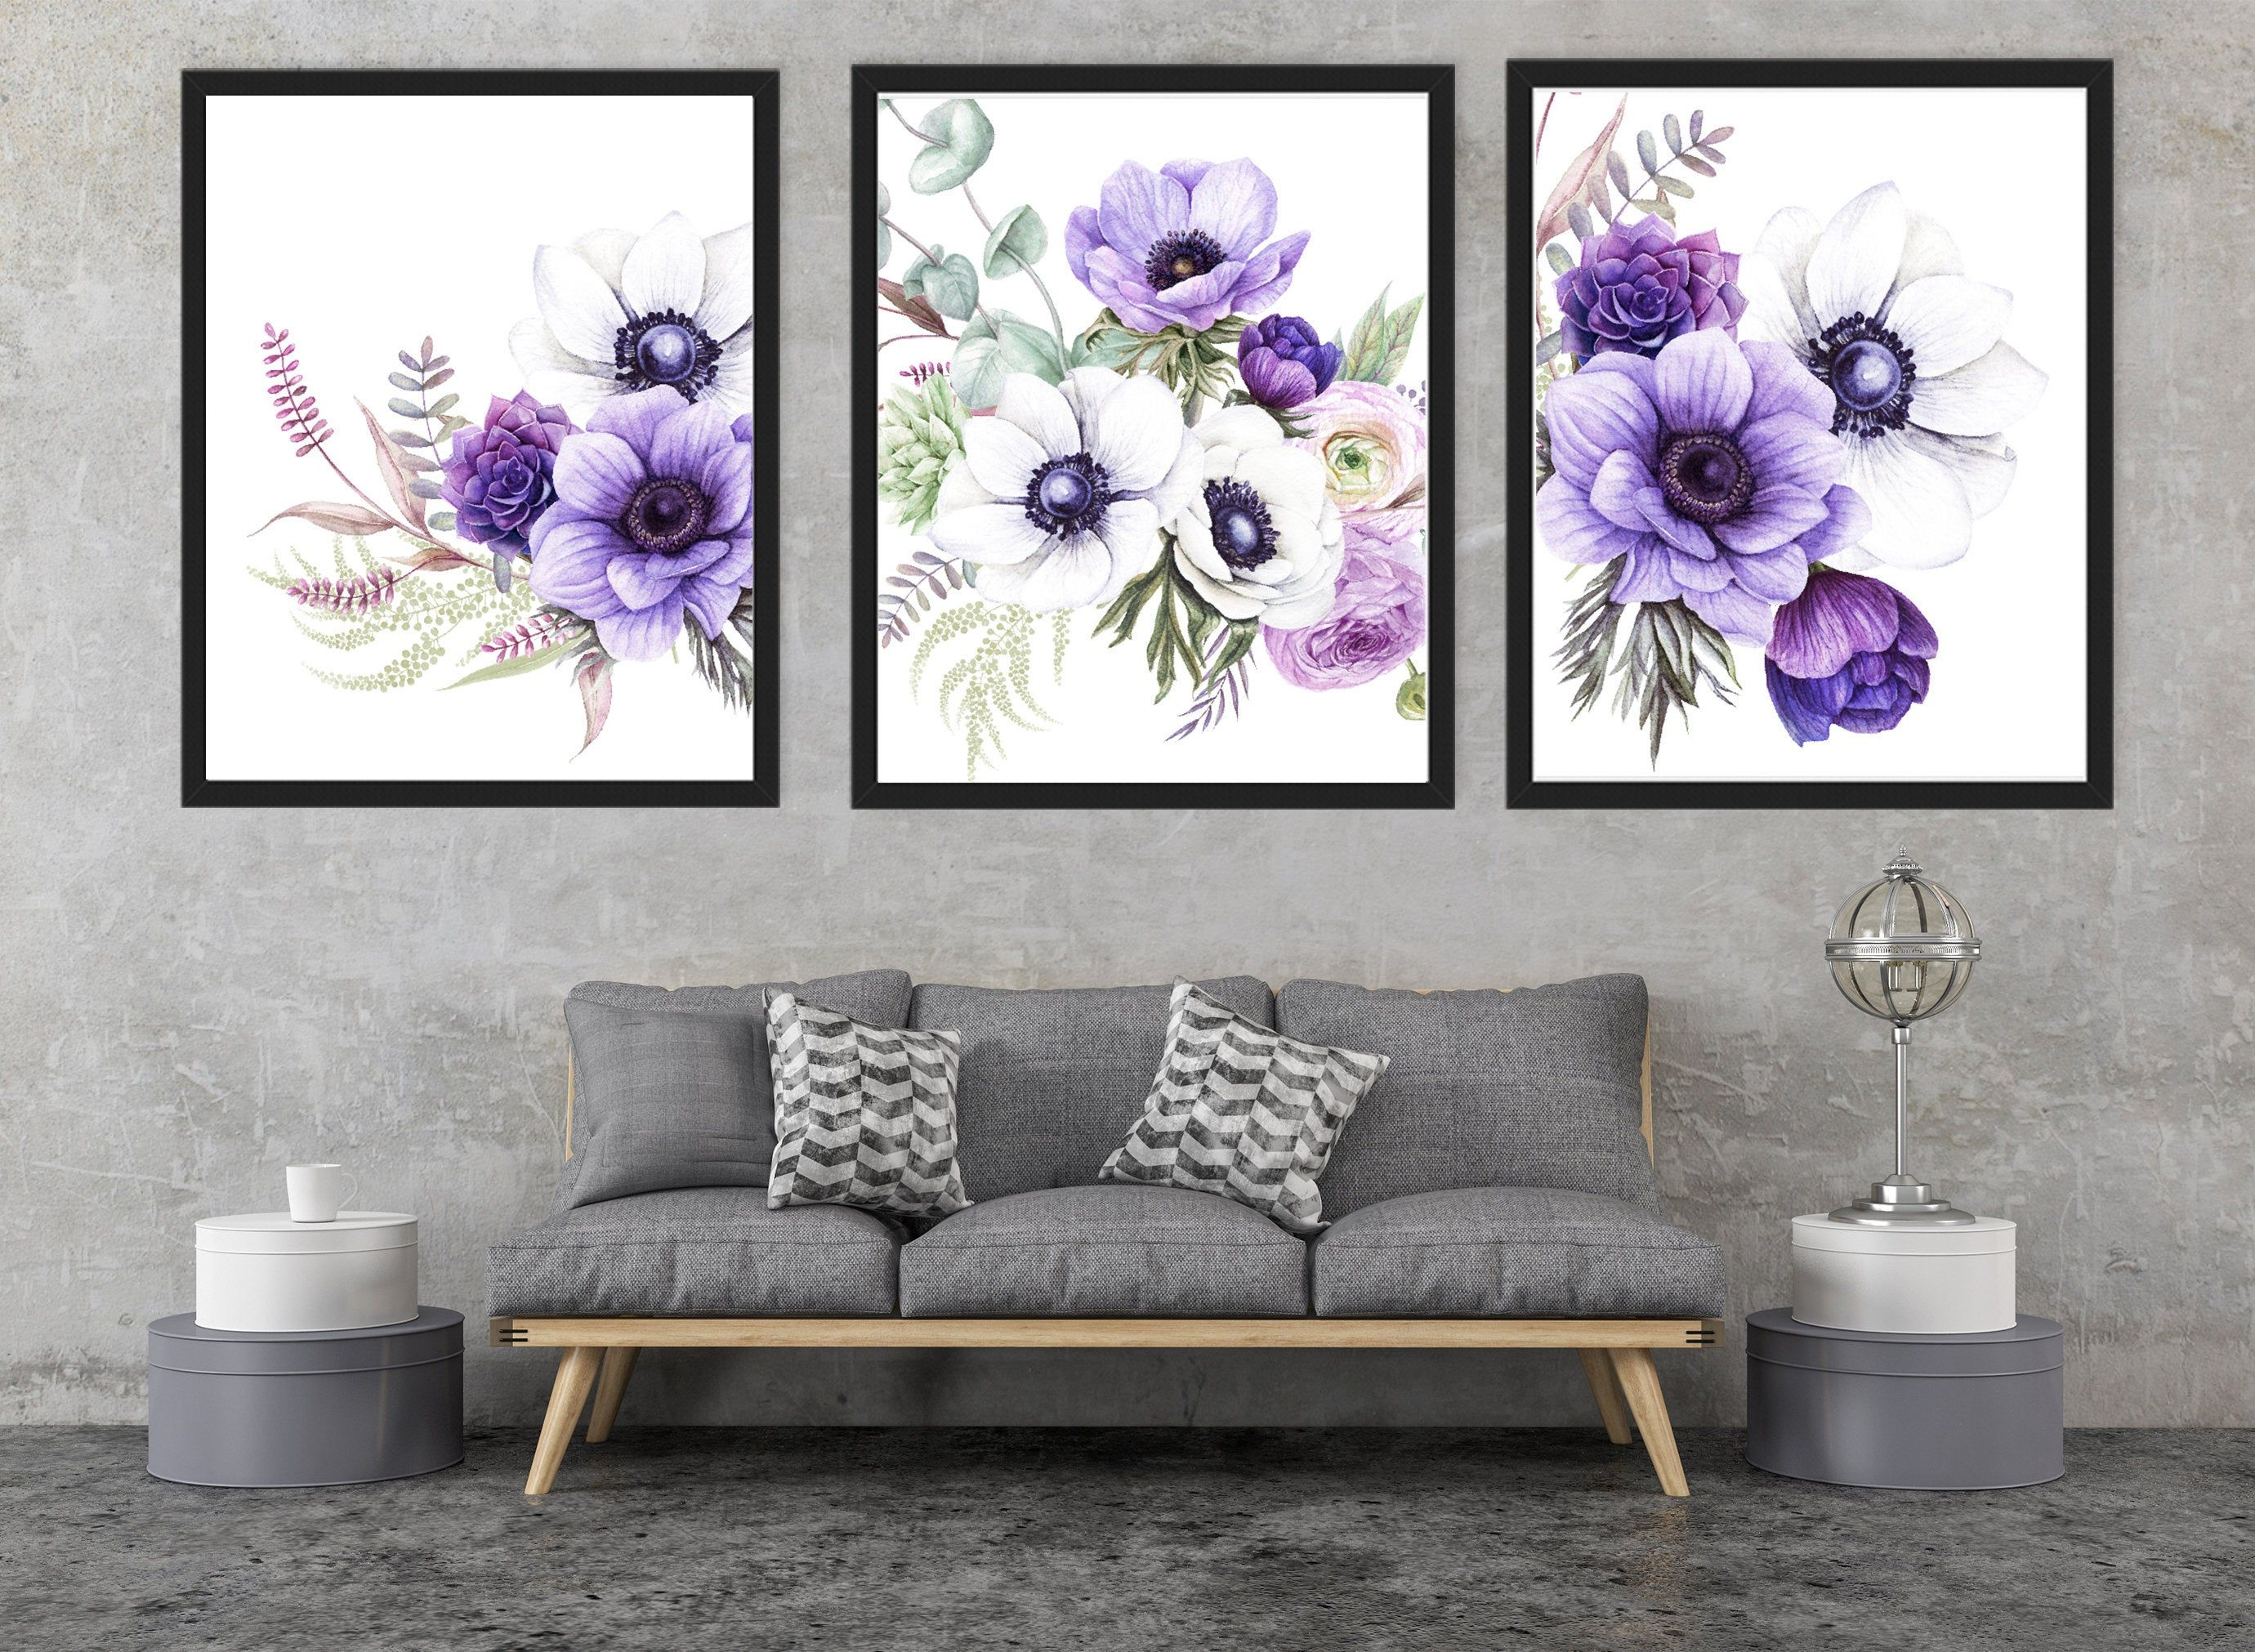 White Anemones Print Purple Floral Print Botanical Print Etsy In 2020 Purple Wall Decor Flower Wall Art Flower Wall